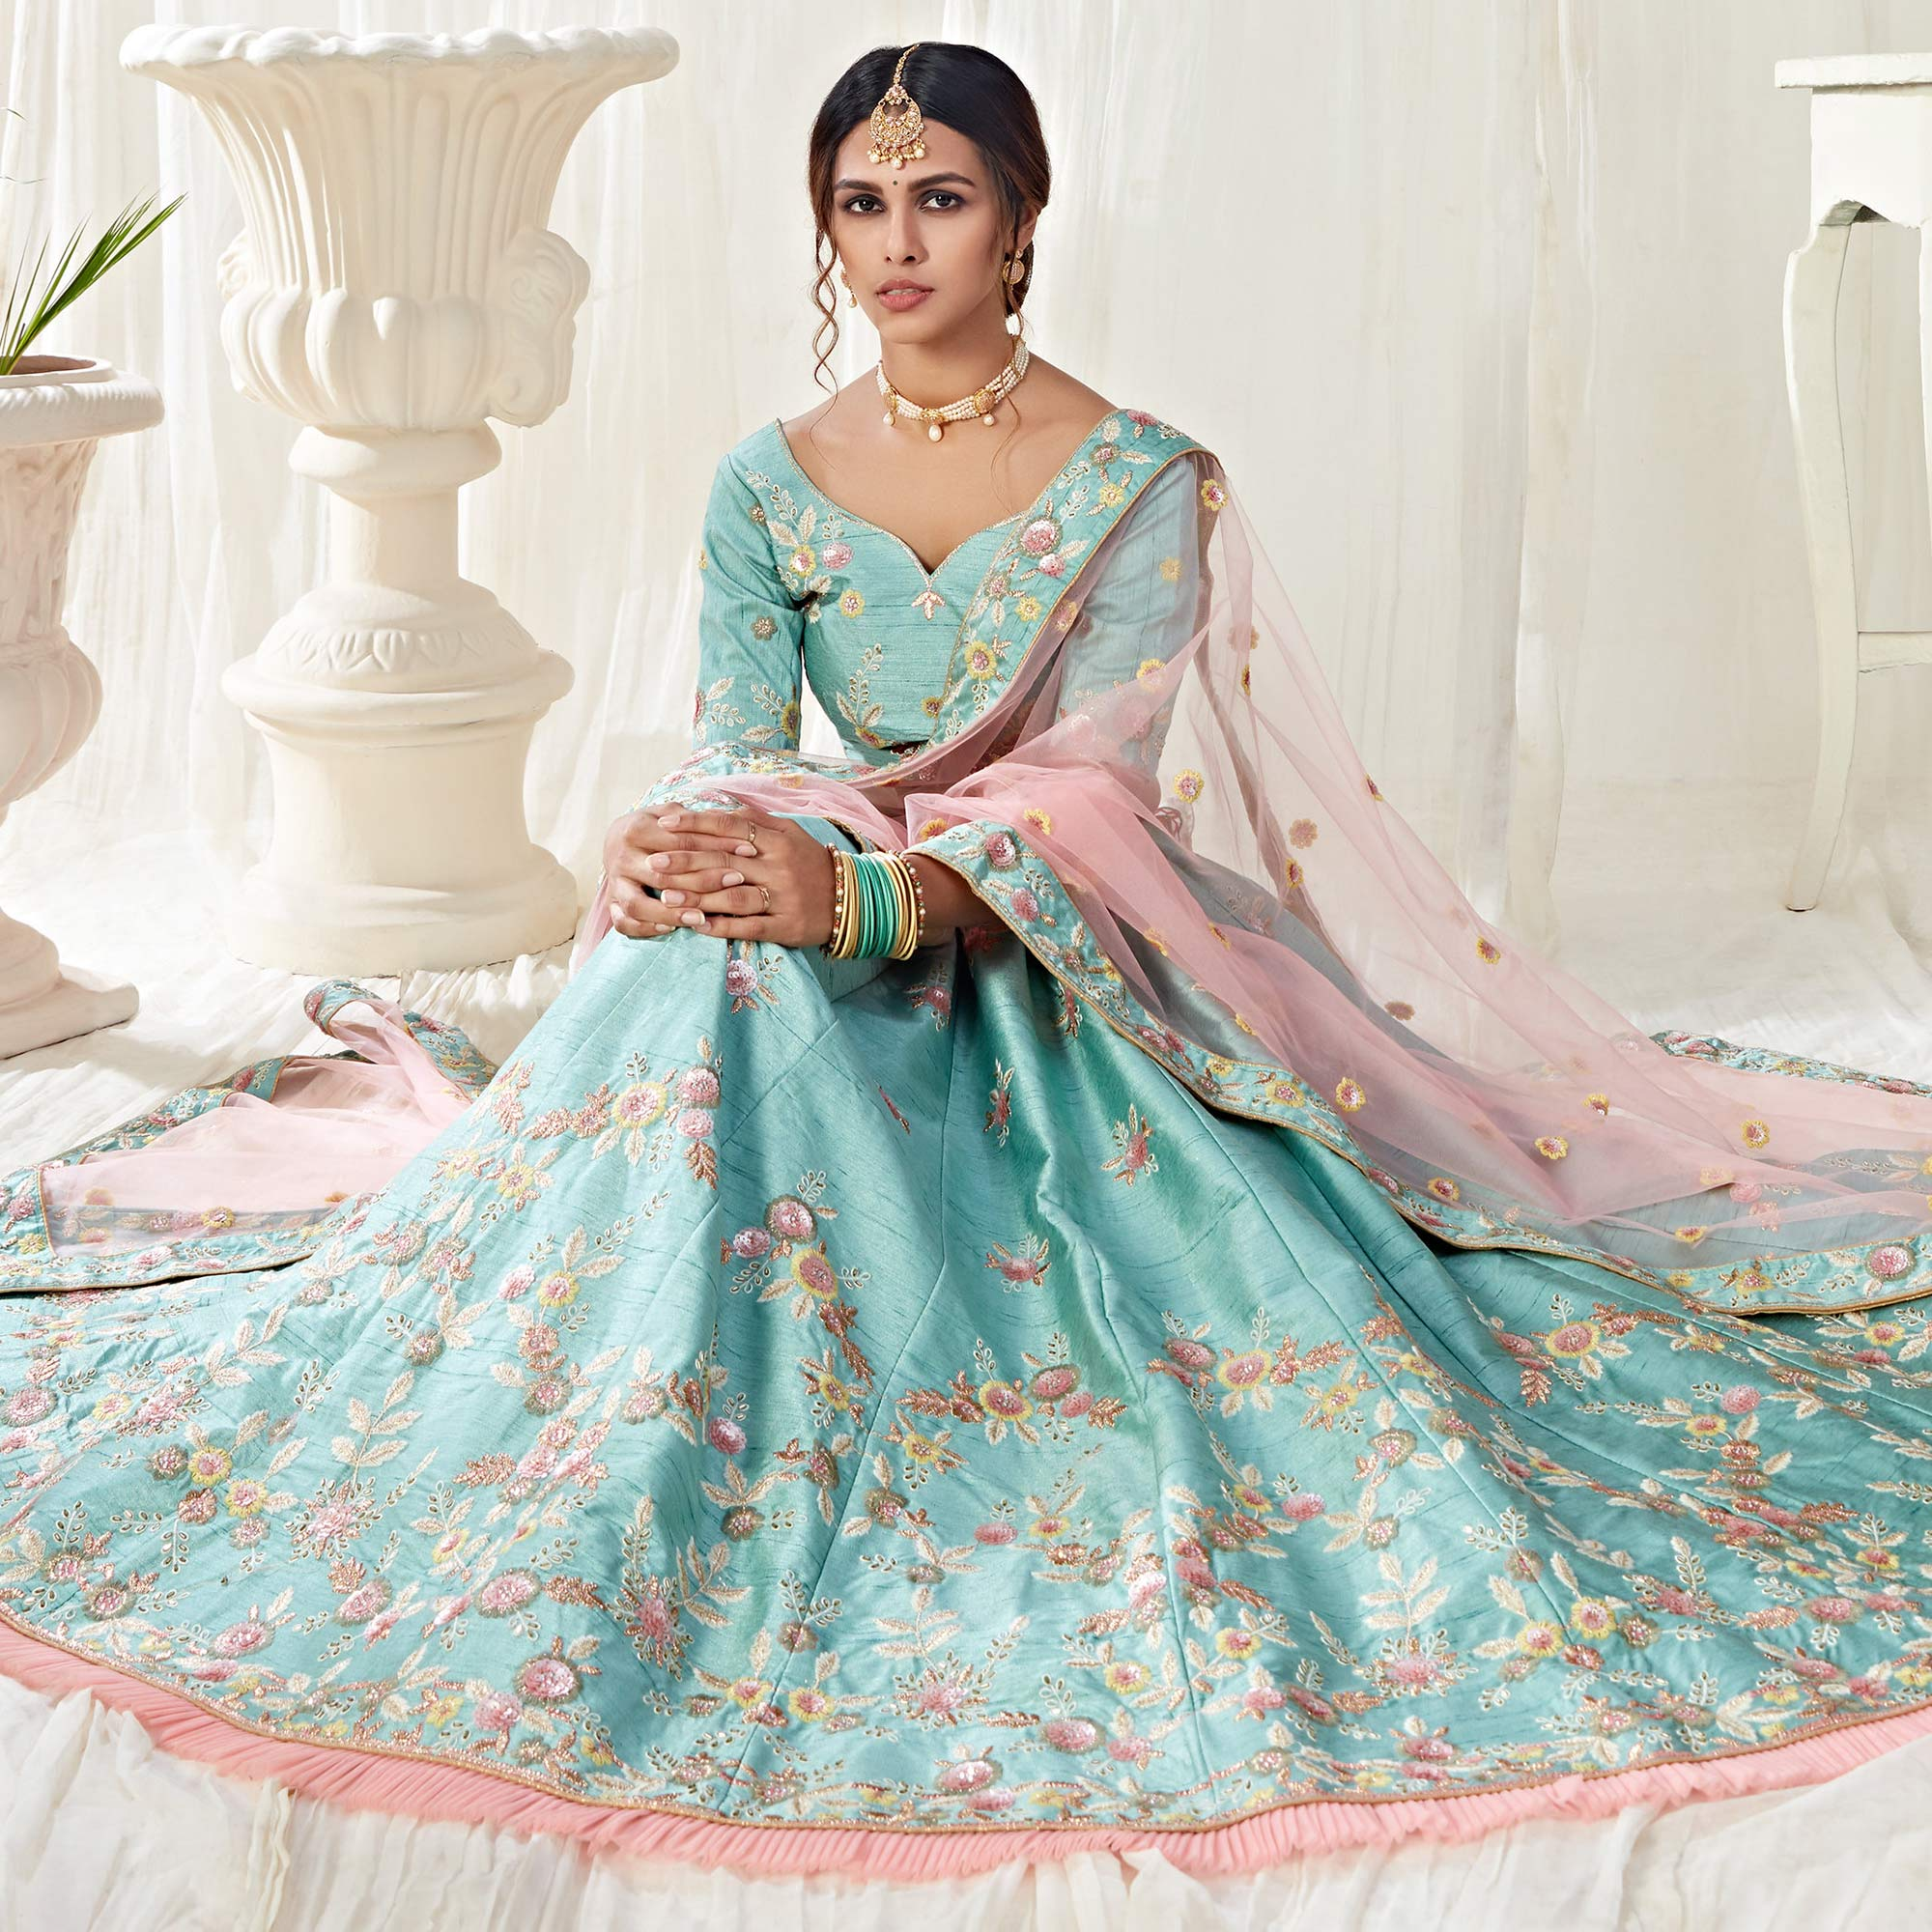 Blooming Ice Blue Colored Cording Thread & Sequence Embroidery Designer Wedding Wear Net With Mulberry Silk Lehenga Choli